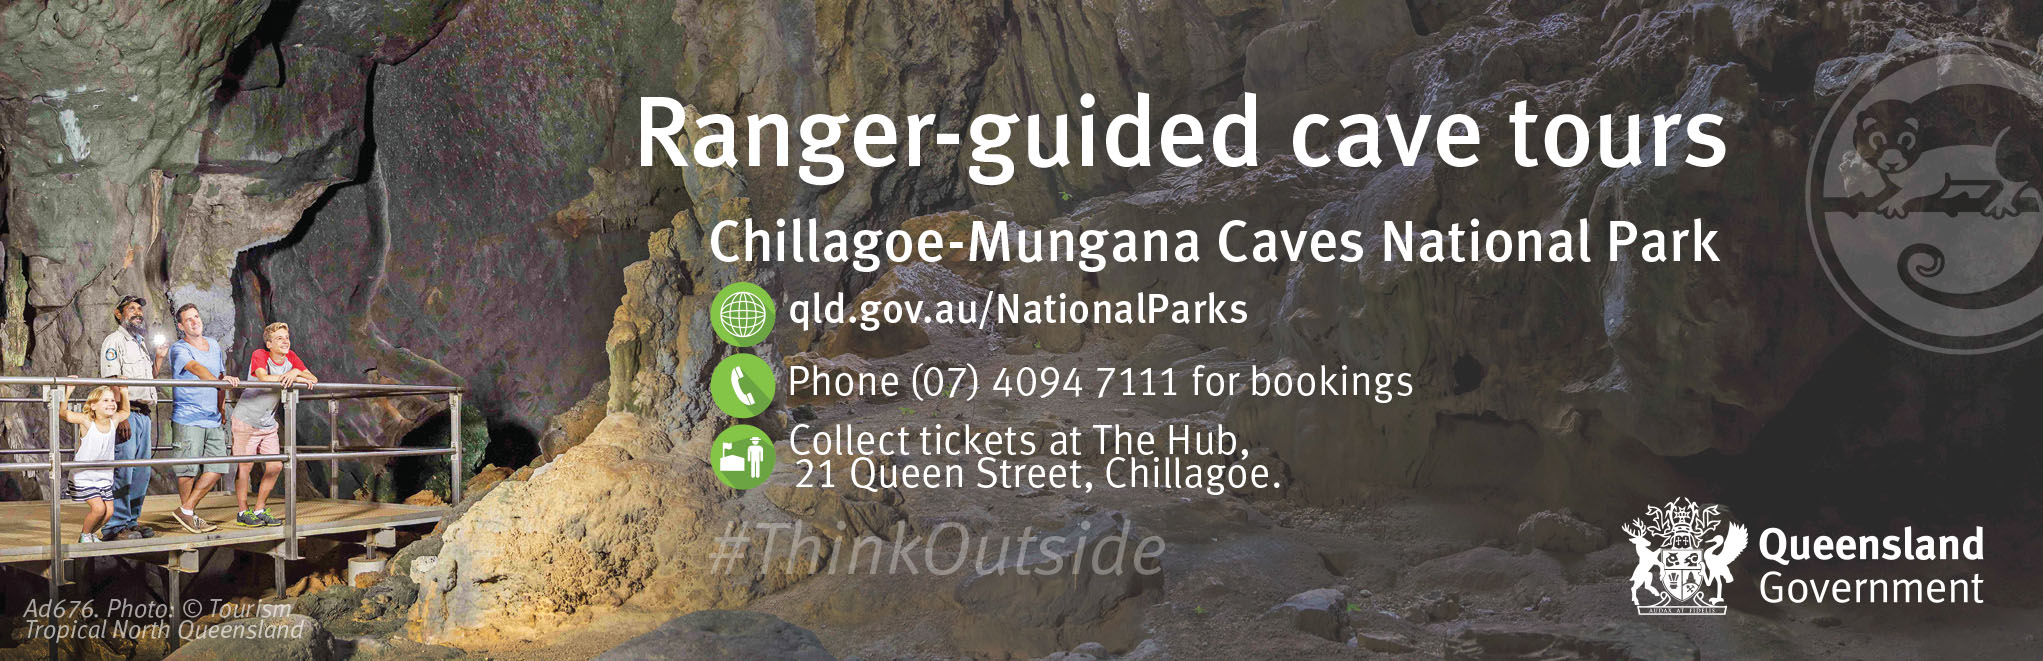 Ranger-guided cave tours